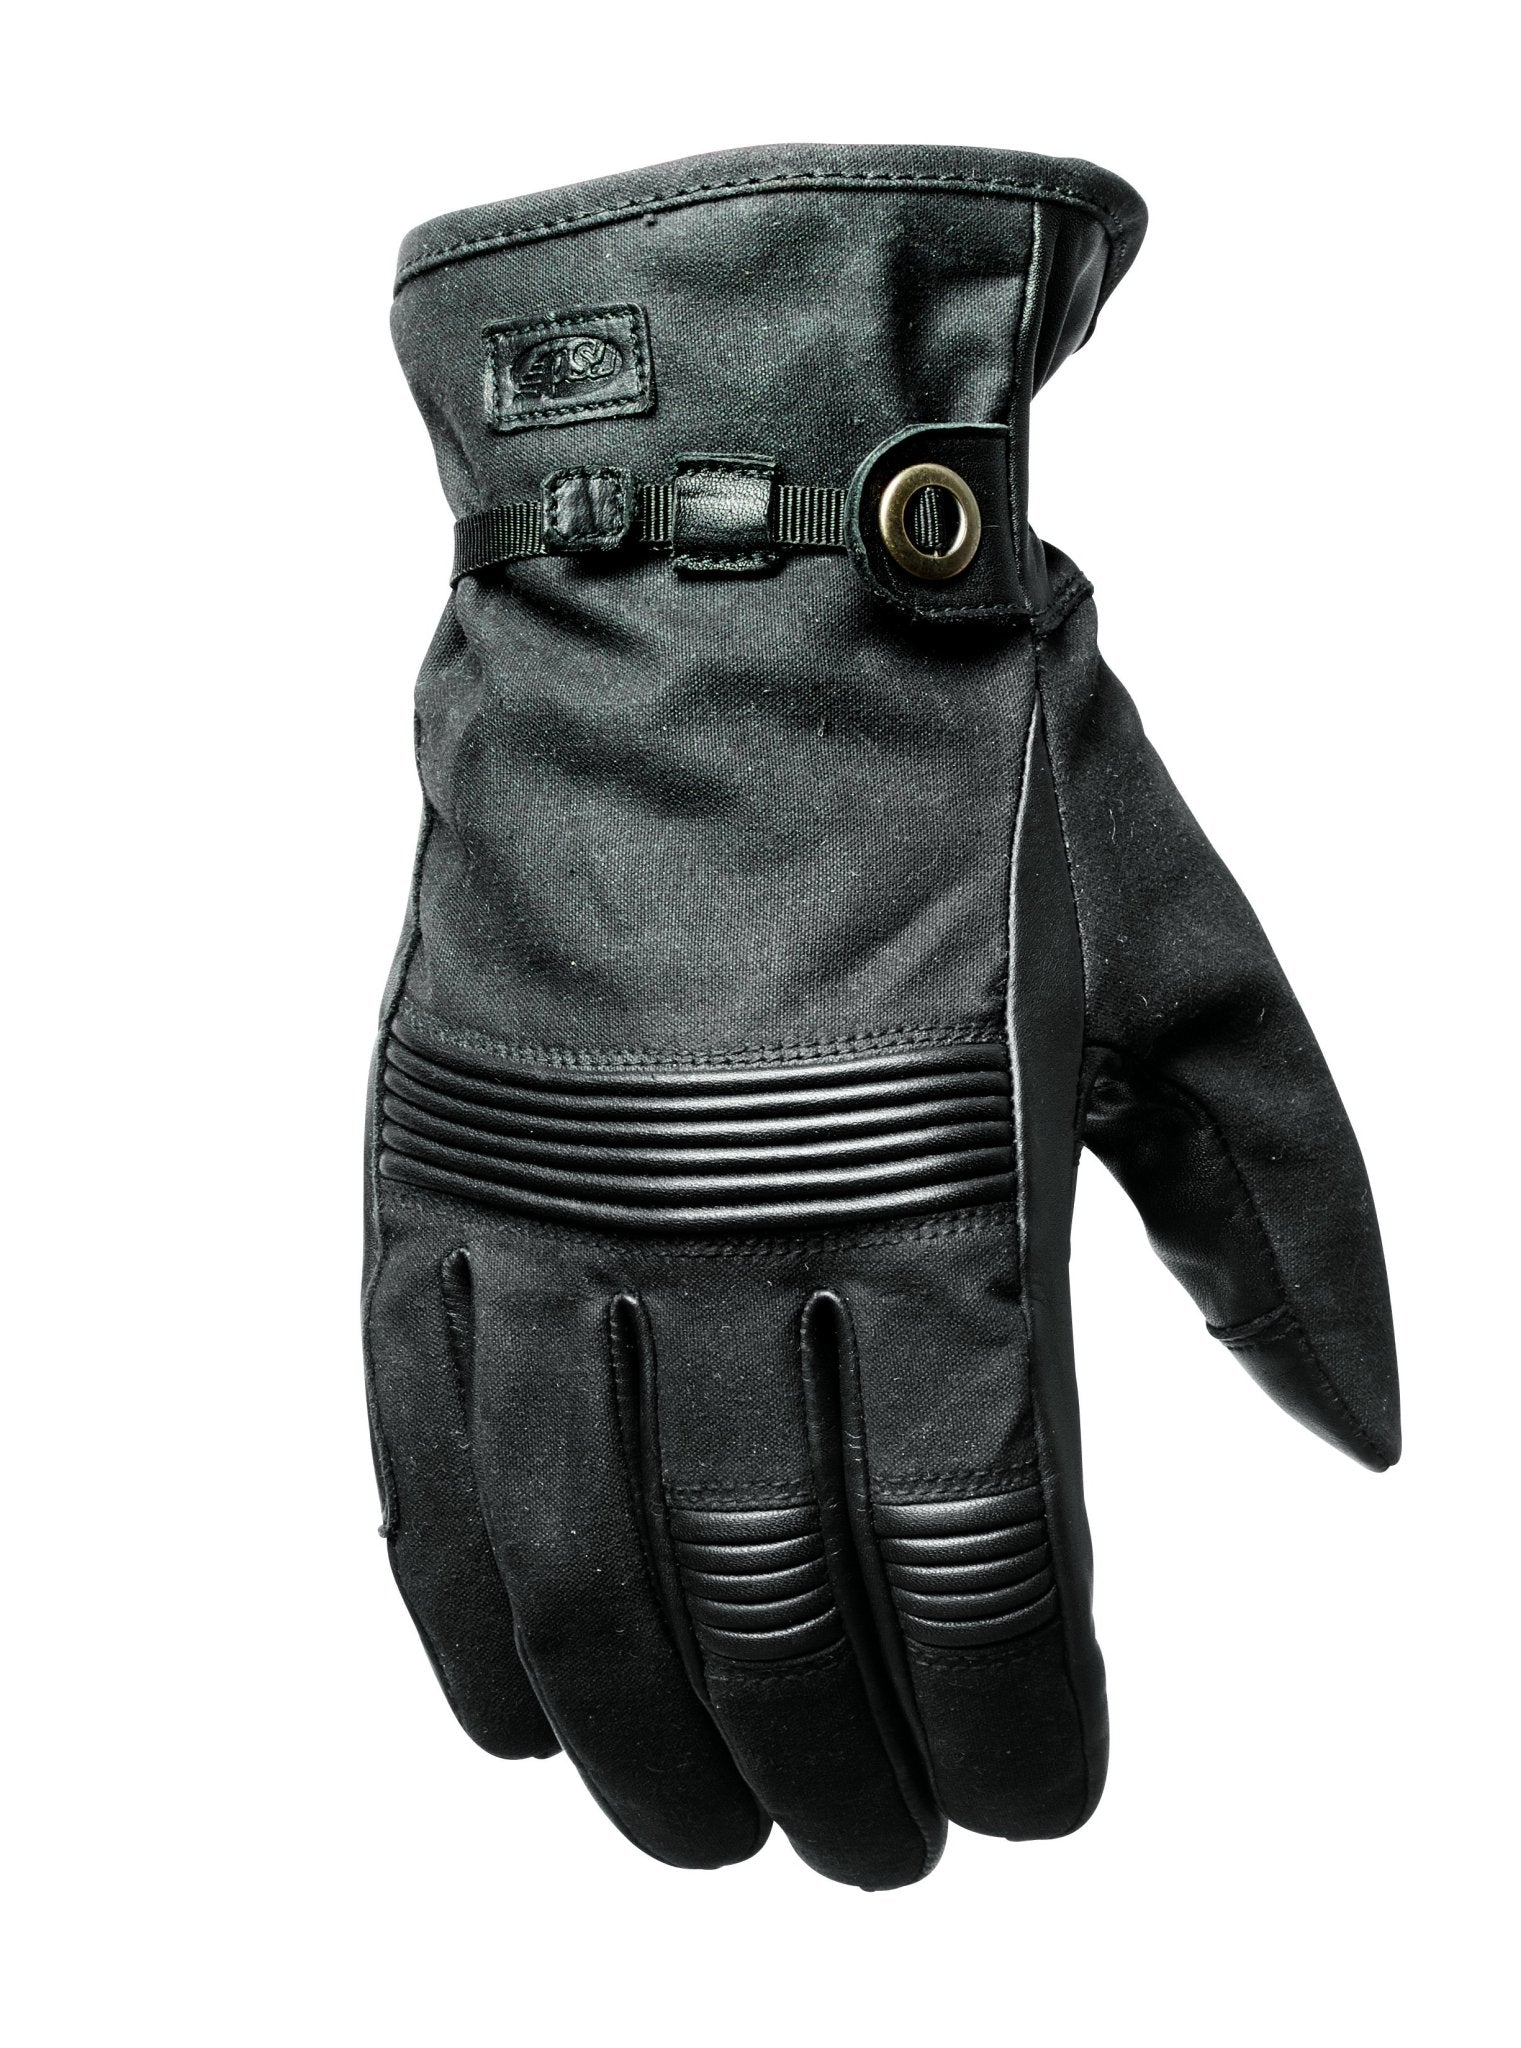 Roland Sands Design - Roland Sands Design Truman Black Gloves - Gloves - Salt Flats Clothing